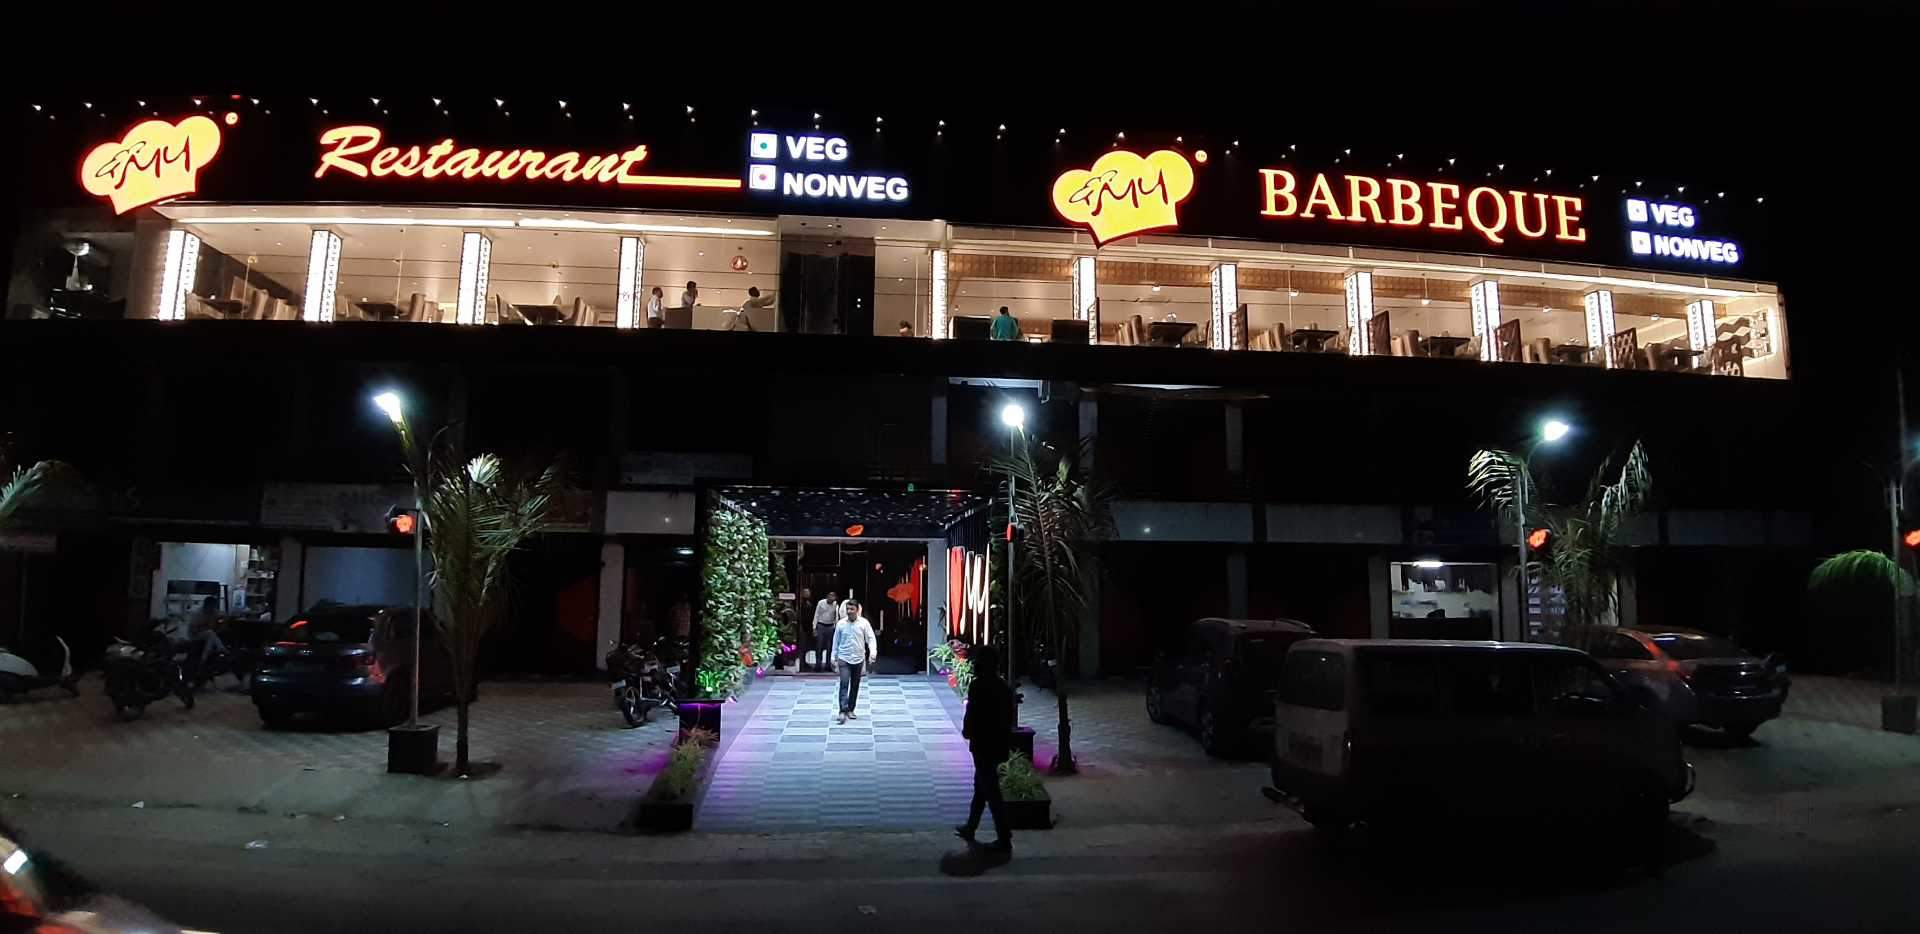 My Restaurant Barbeque Anand Ho Anand Barbeque